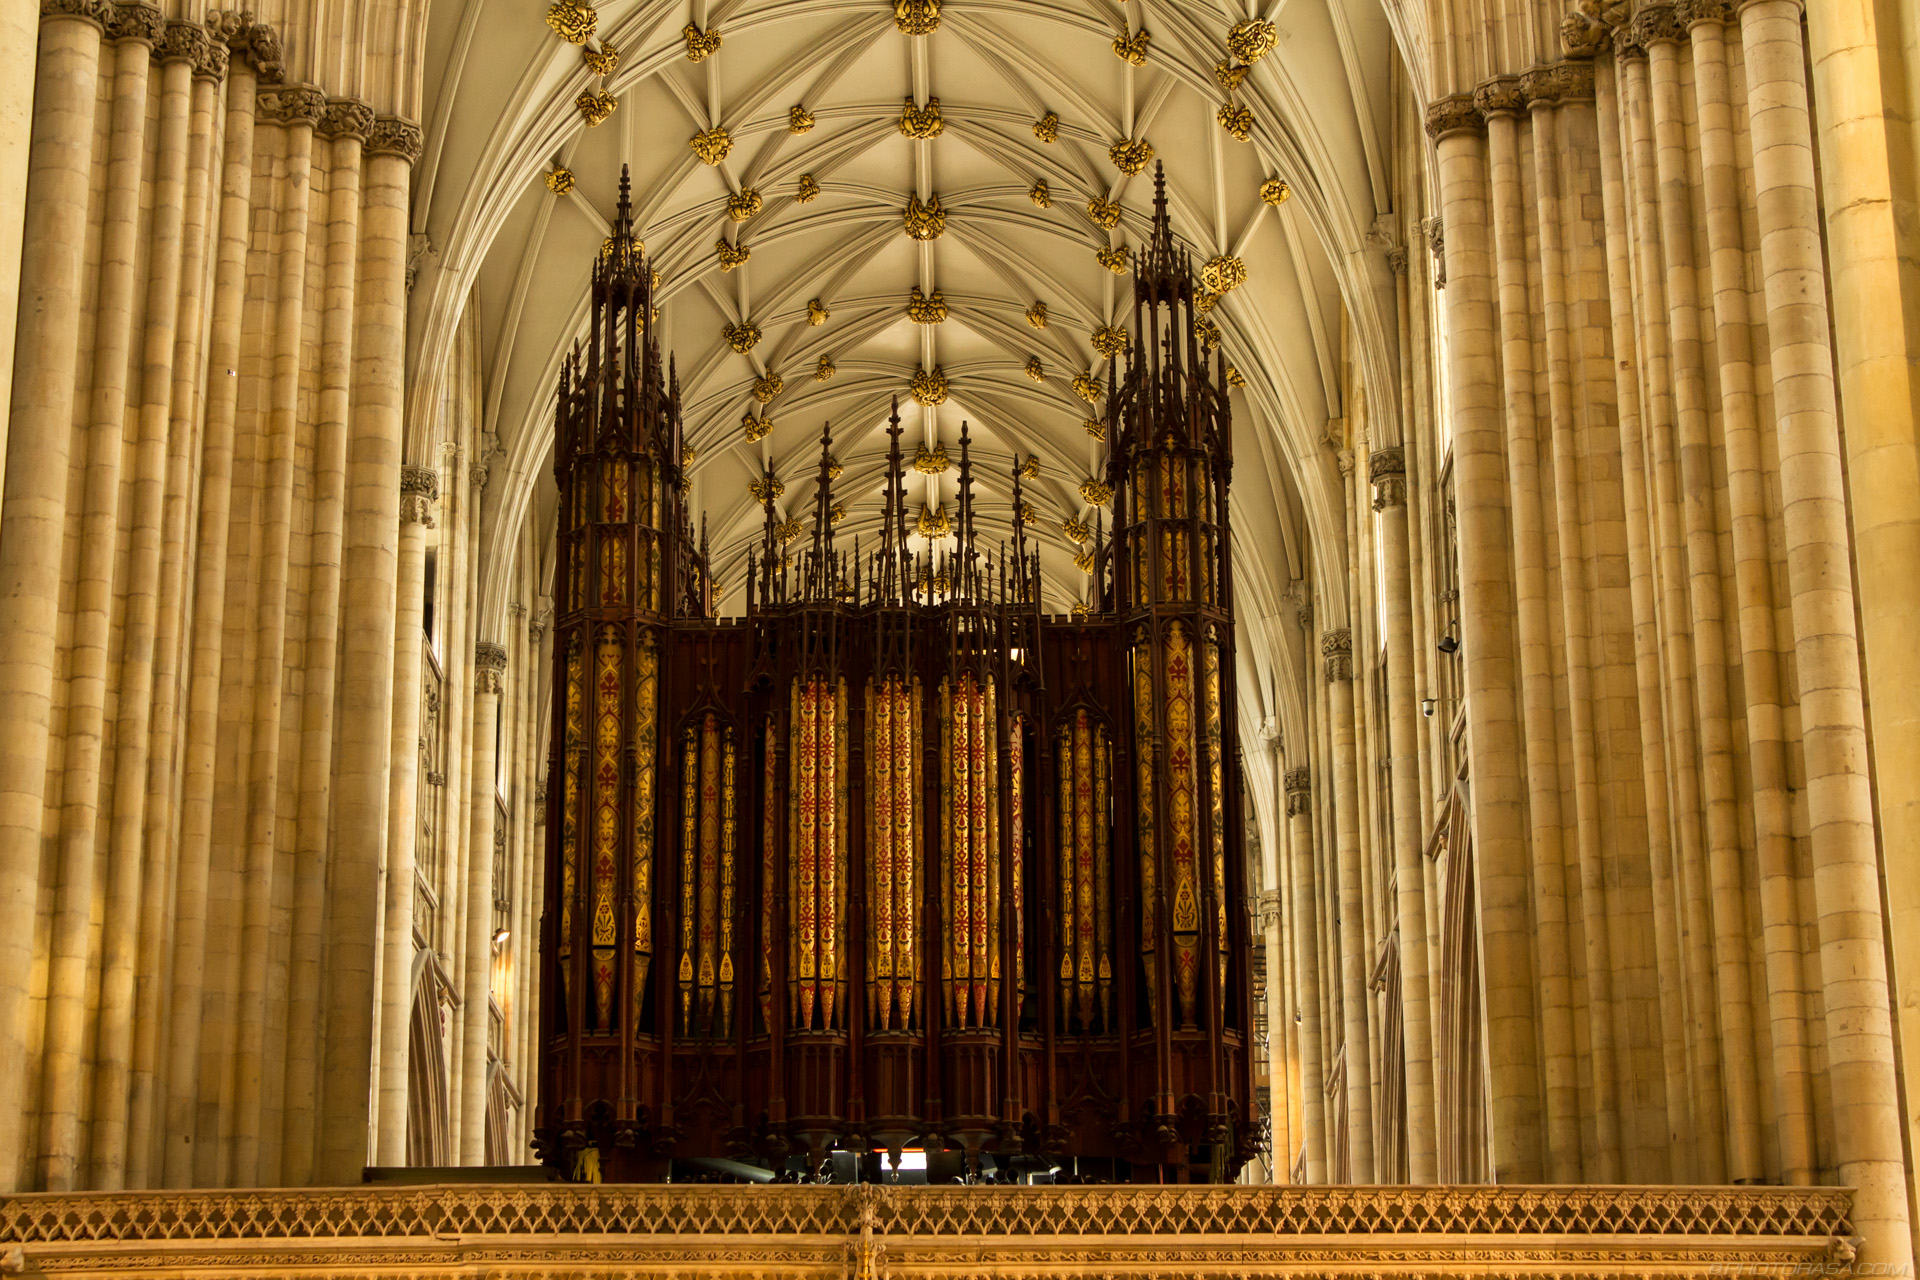 http://photorasa.com/places/yorkminster-cathedral/attachment/decorative-organ/